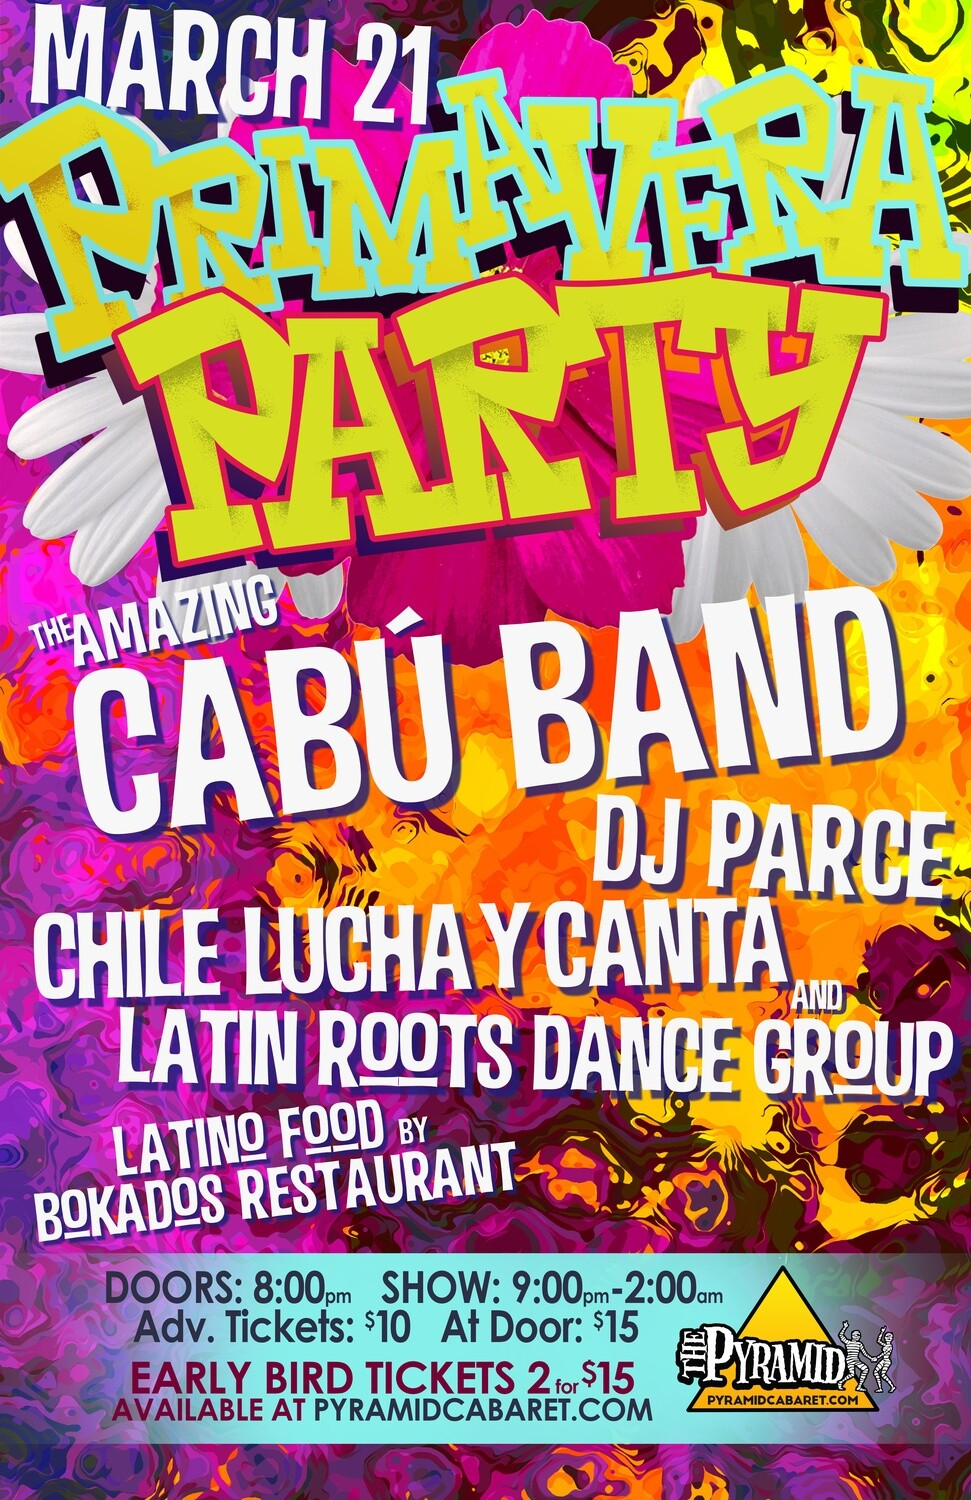 Primavera Party w/ CABU BAND - MAR. 21 - Pyramid